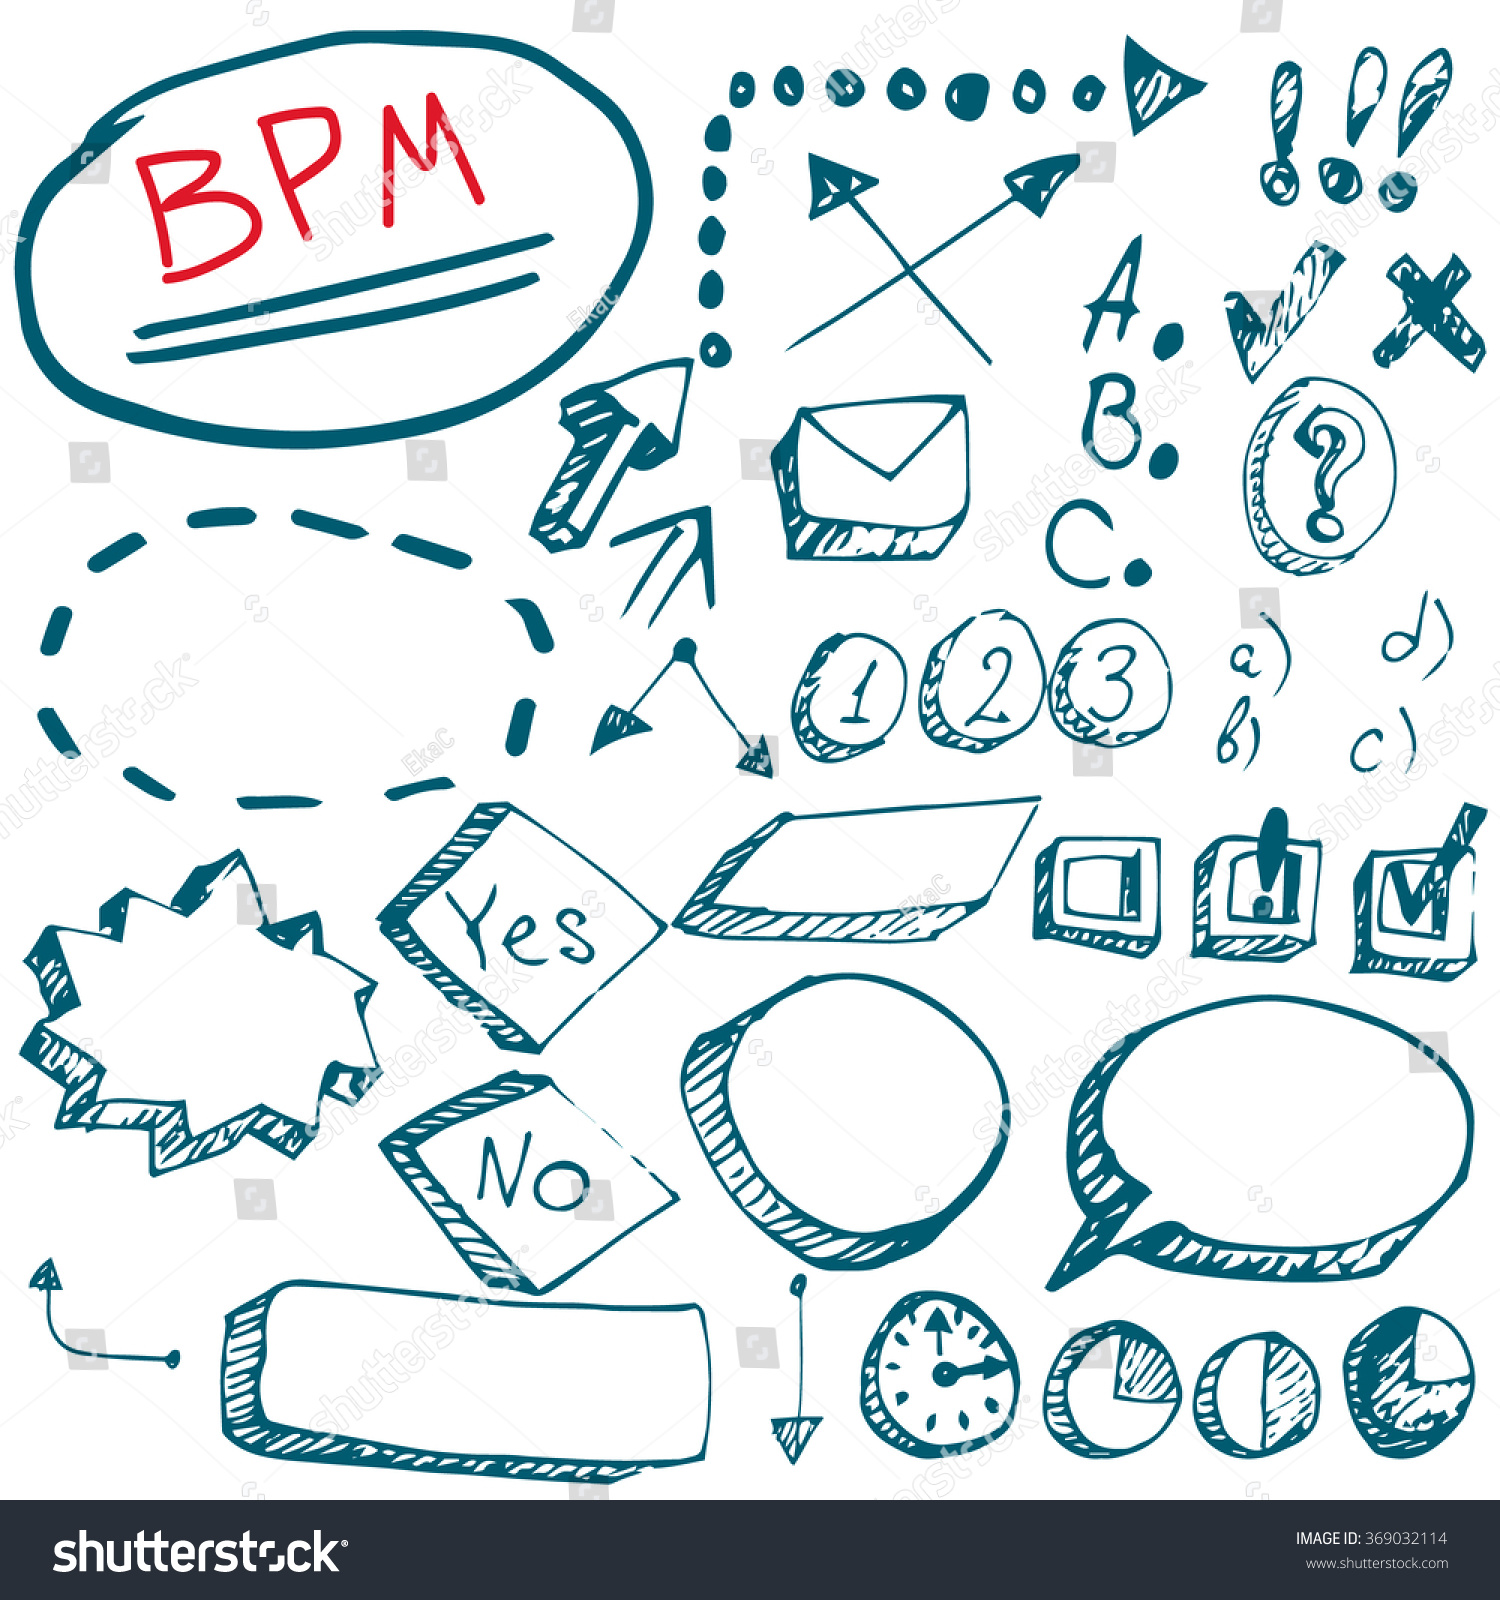 Bpm elements vector work flow chart stock vector 369032114 bpm elements vector work flow chart and business process element management graph hand drawn planning symbols nvjuhfo Image collections